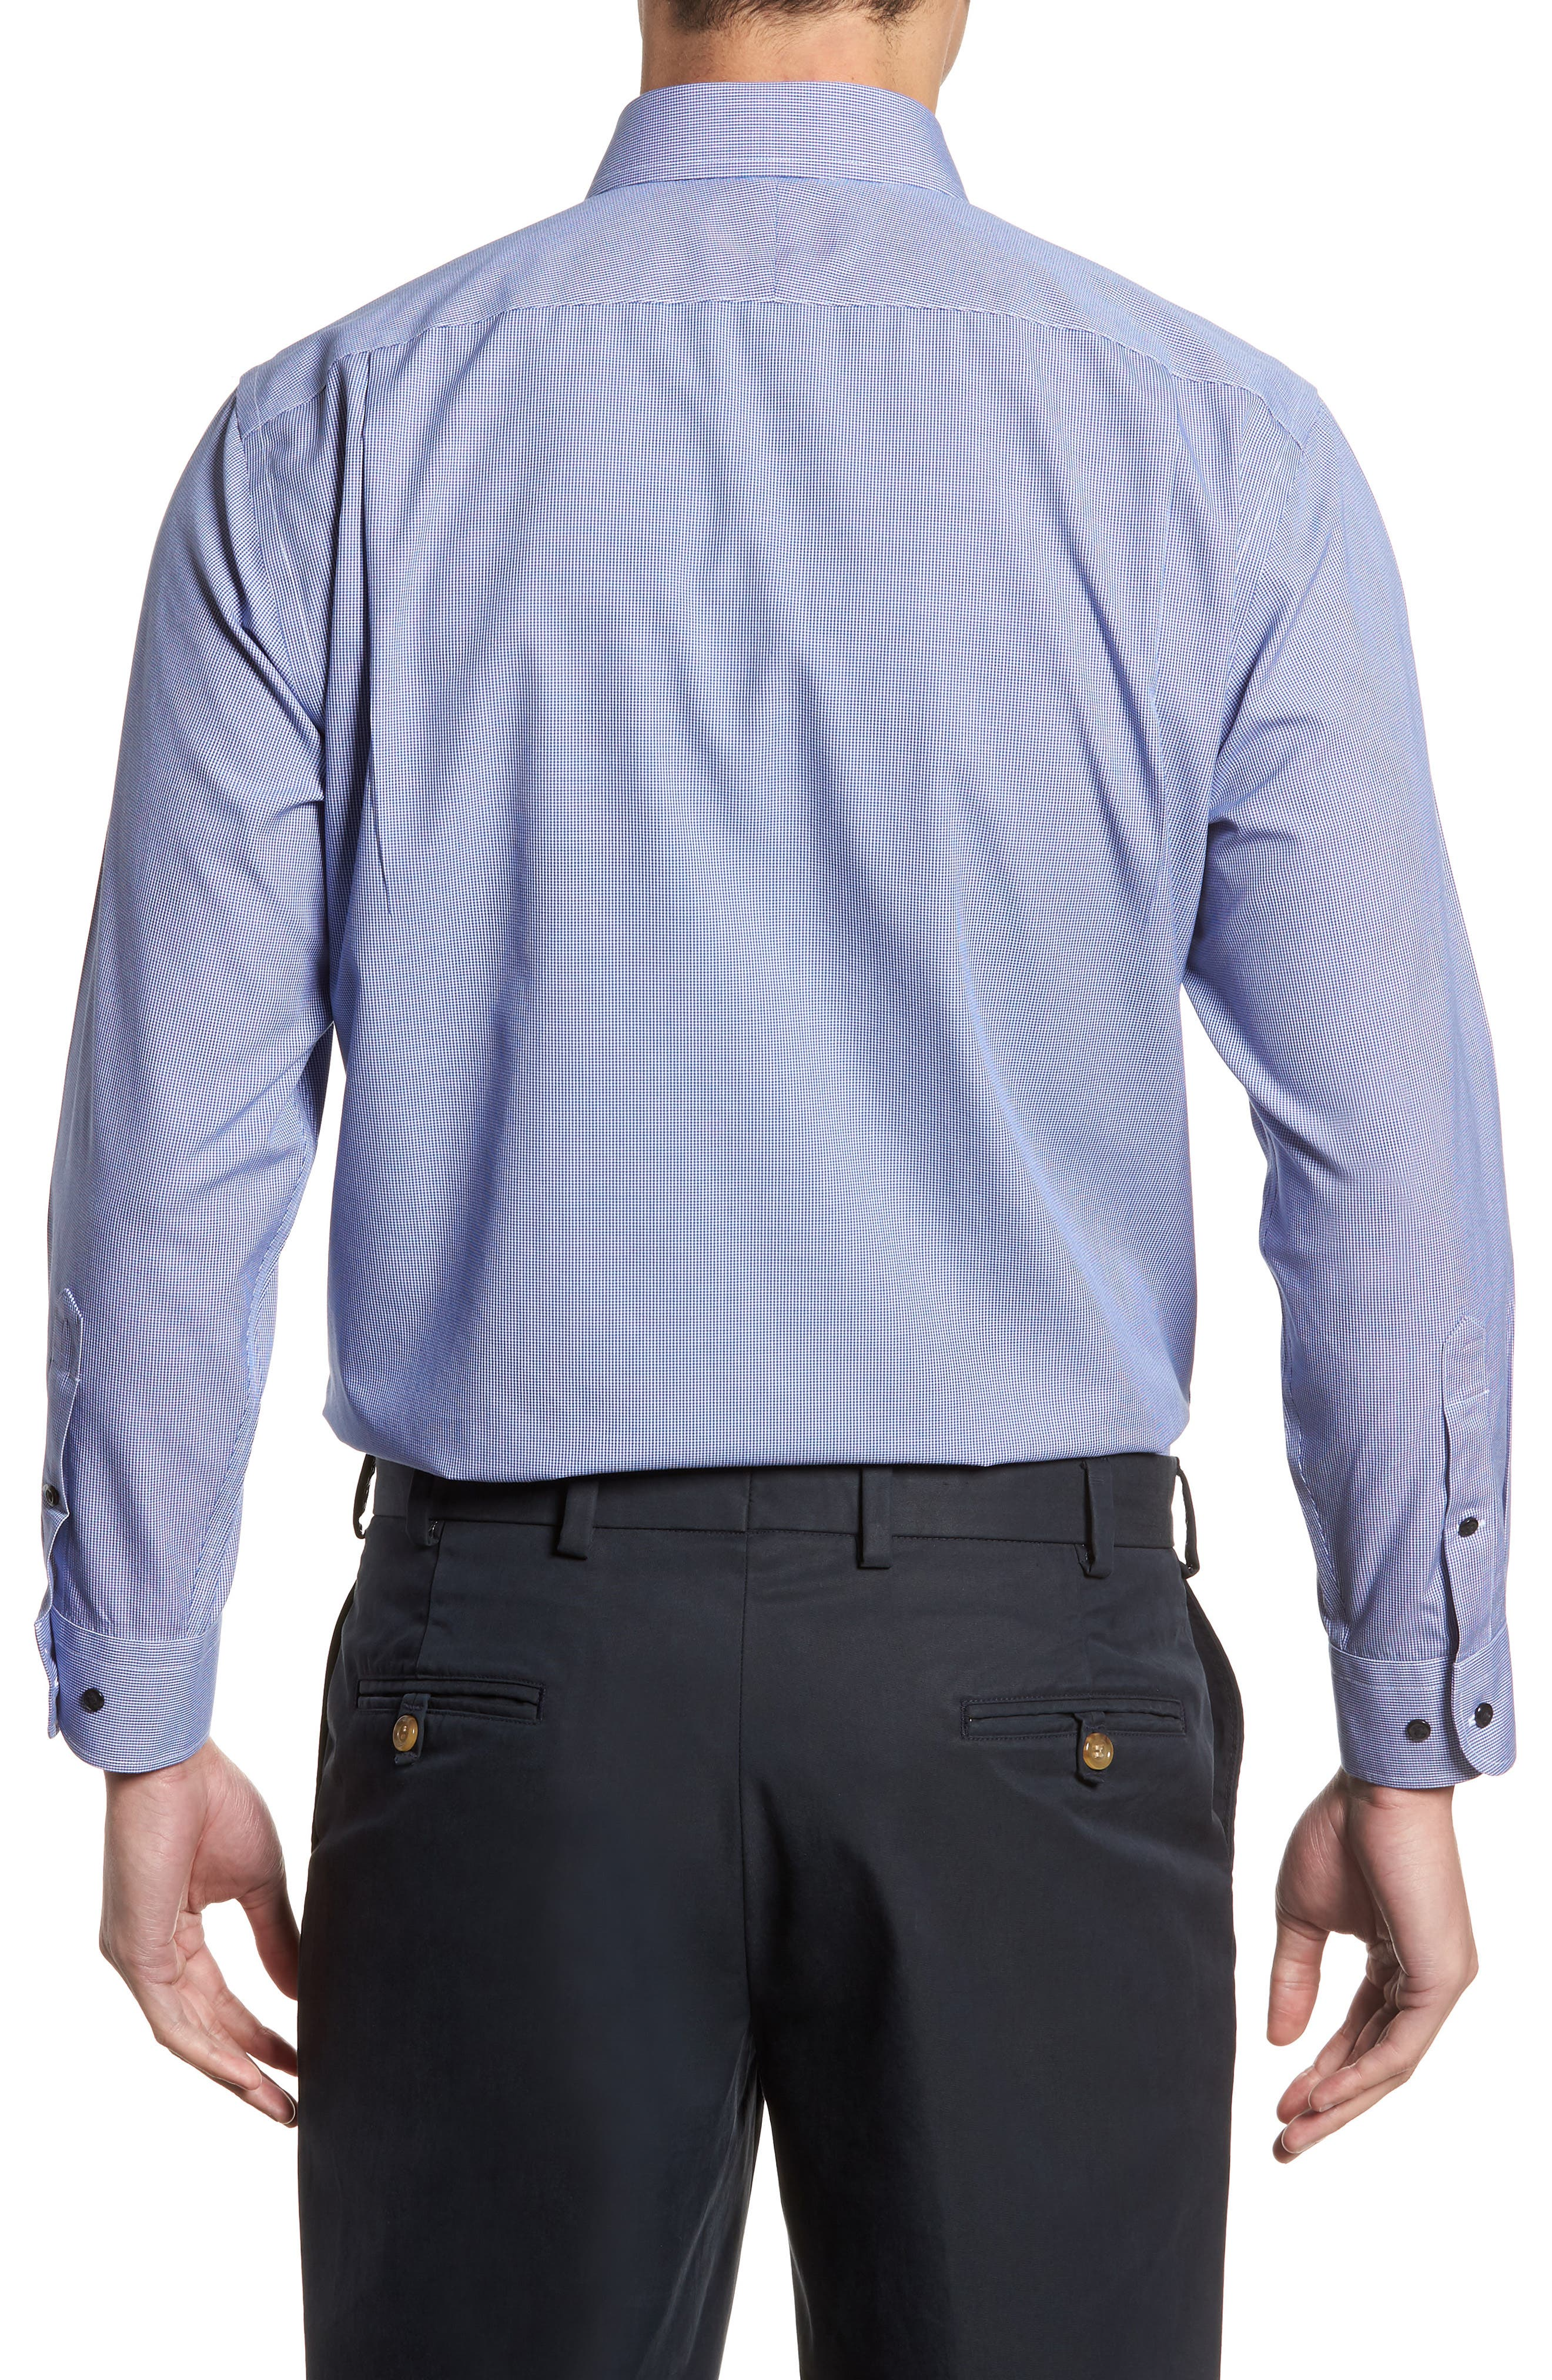 Smartcare<sup>™</sup> Traditional Fit Micro Check Dress Shirt,                             Alternate thumbnail 3, color,                             420